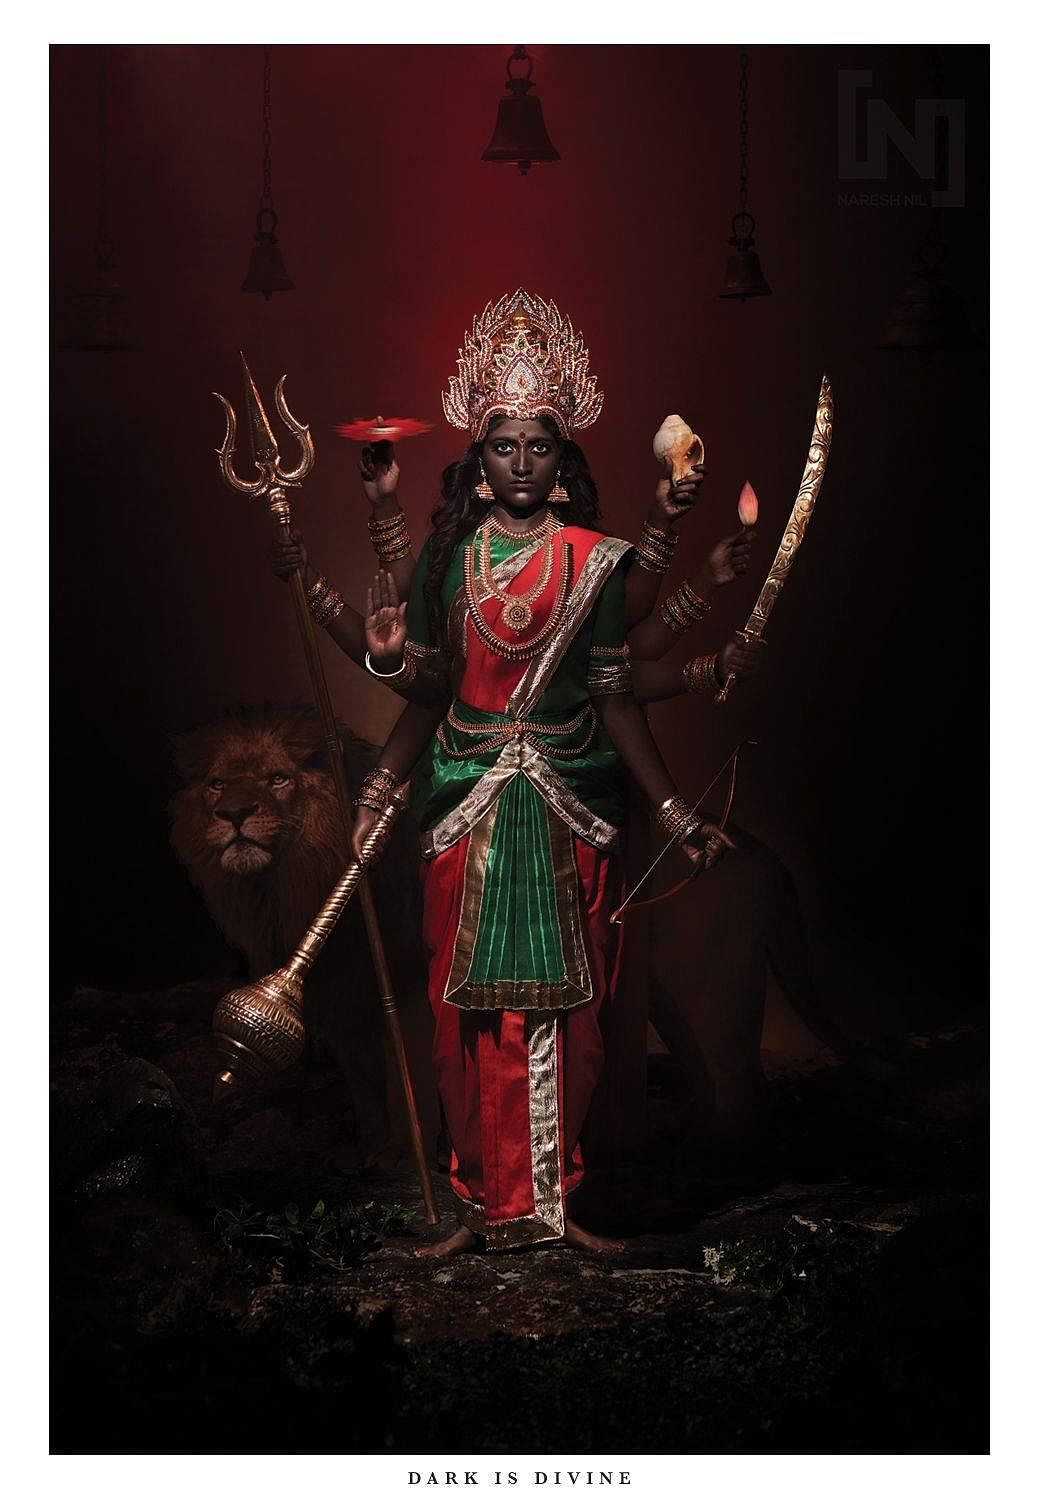 A photo from Naresh Nil's 'Dark is Divine'  series